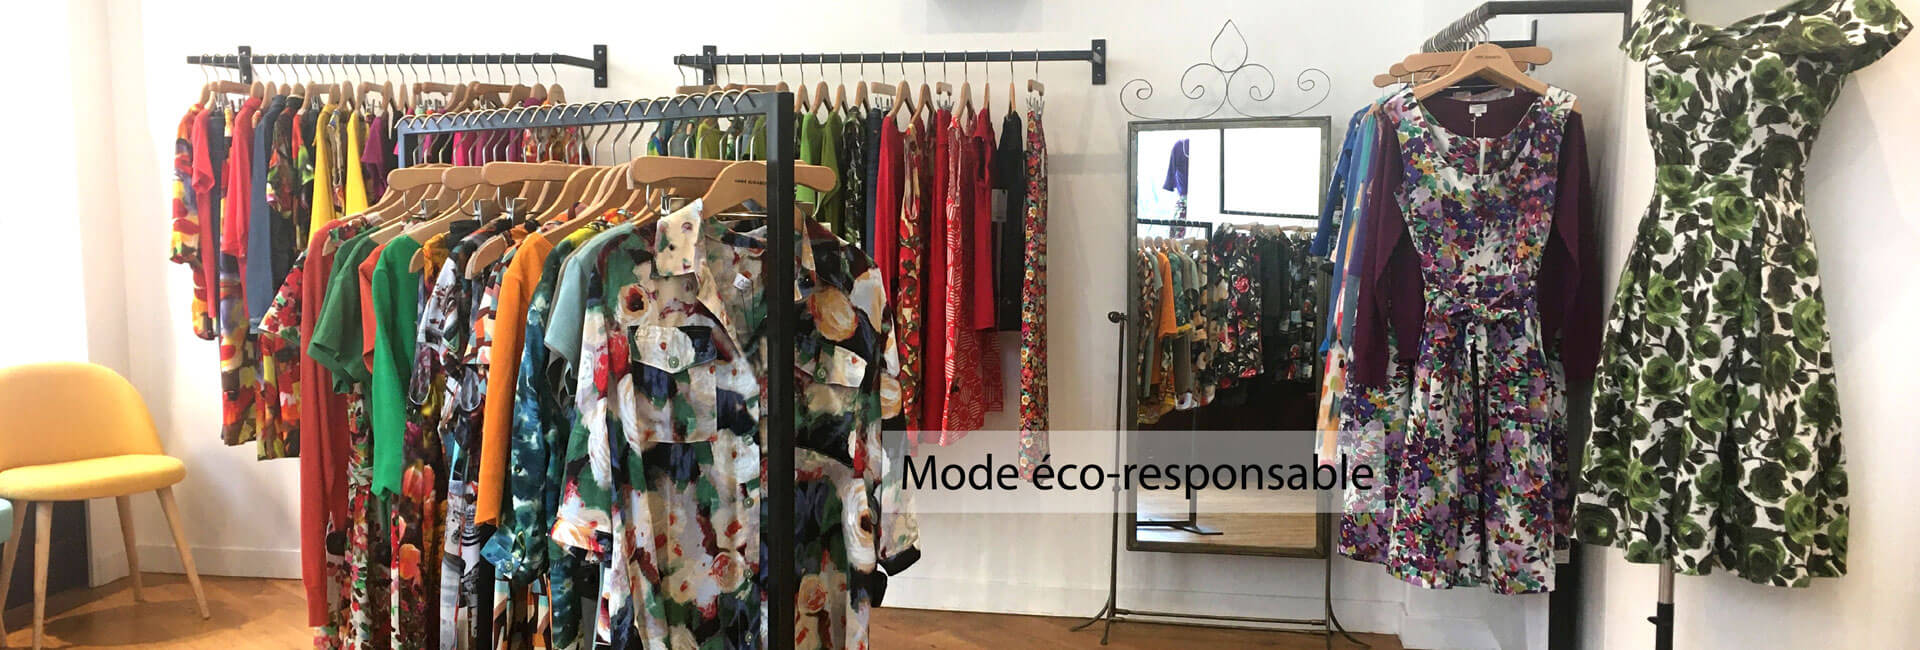 Mode-eco-responsable